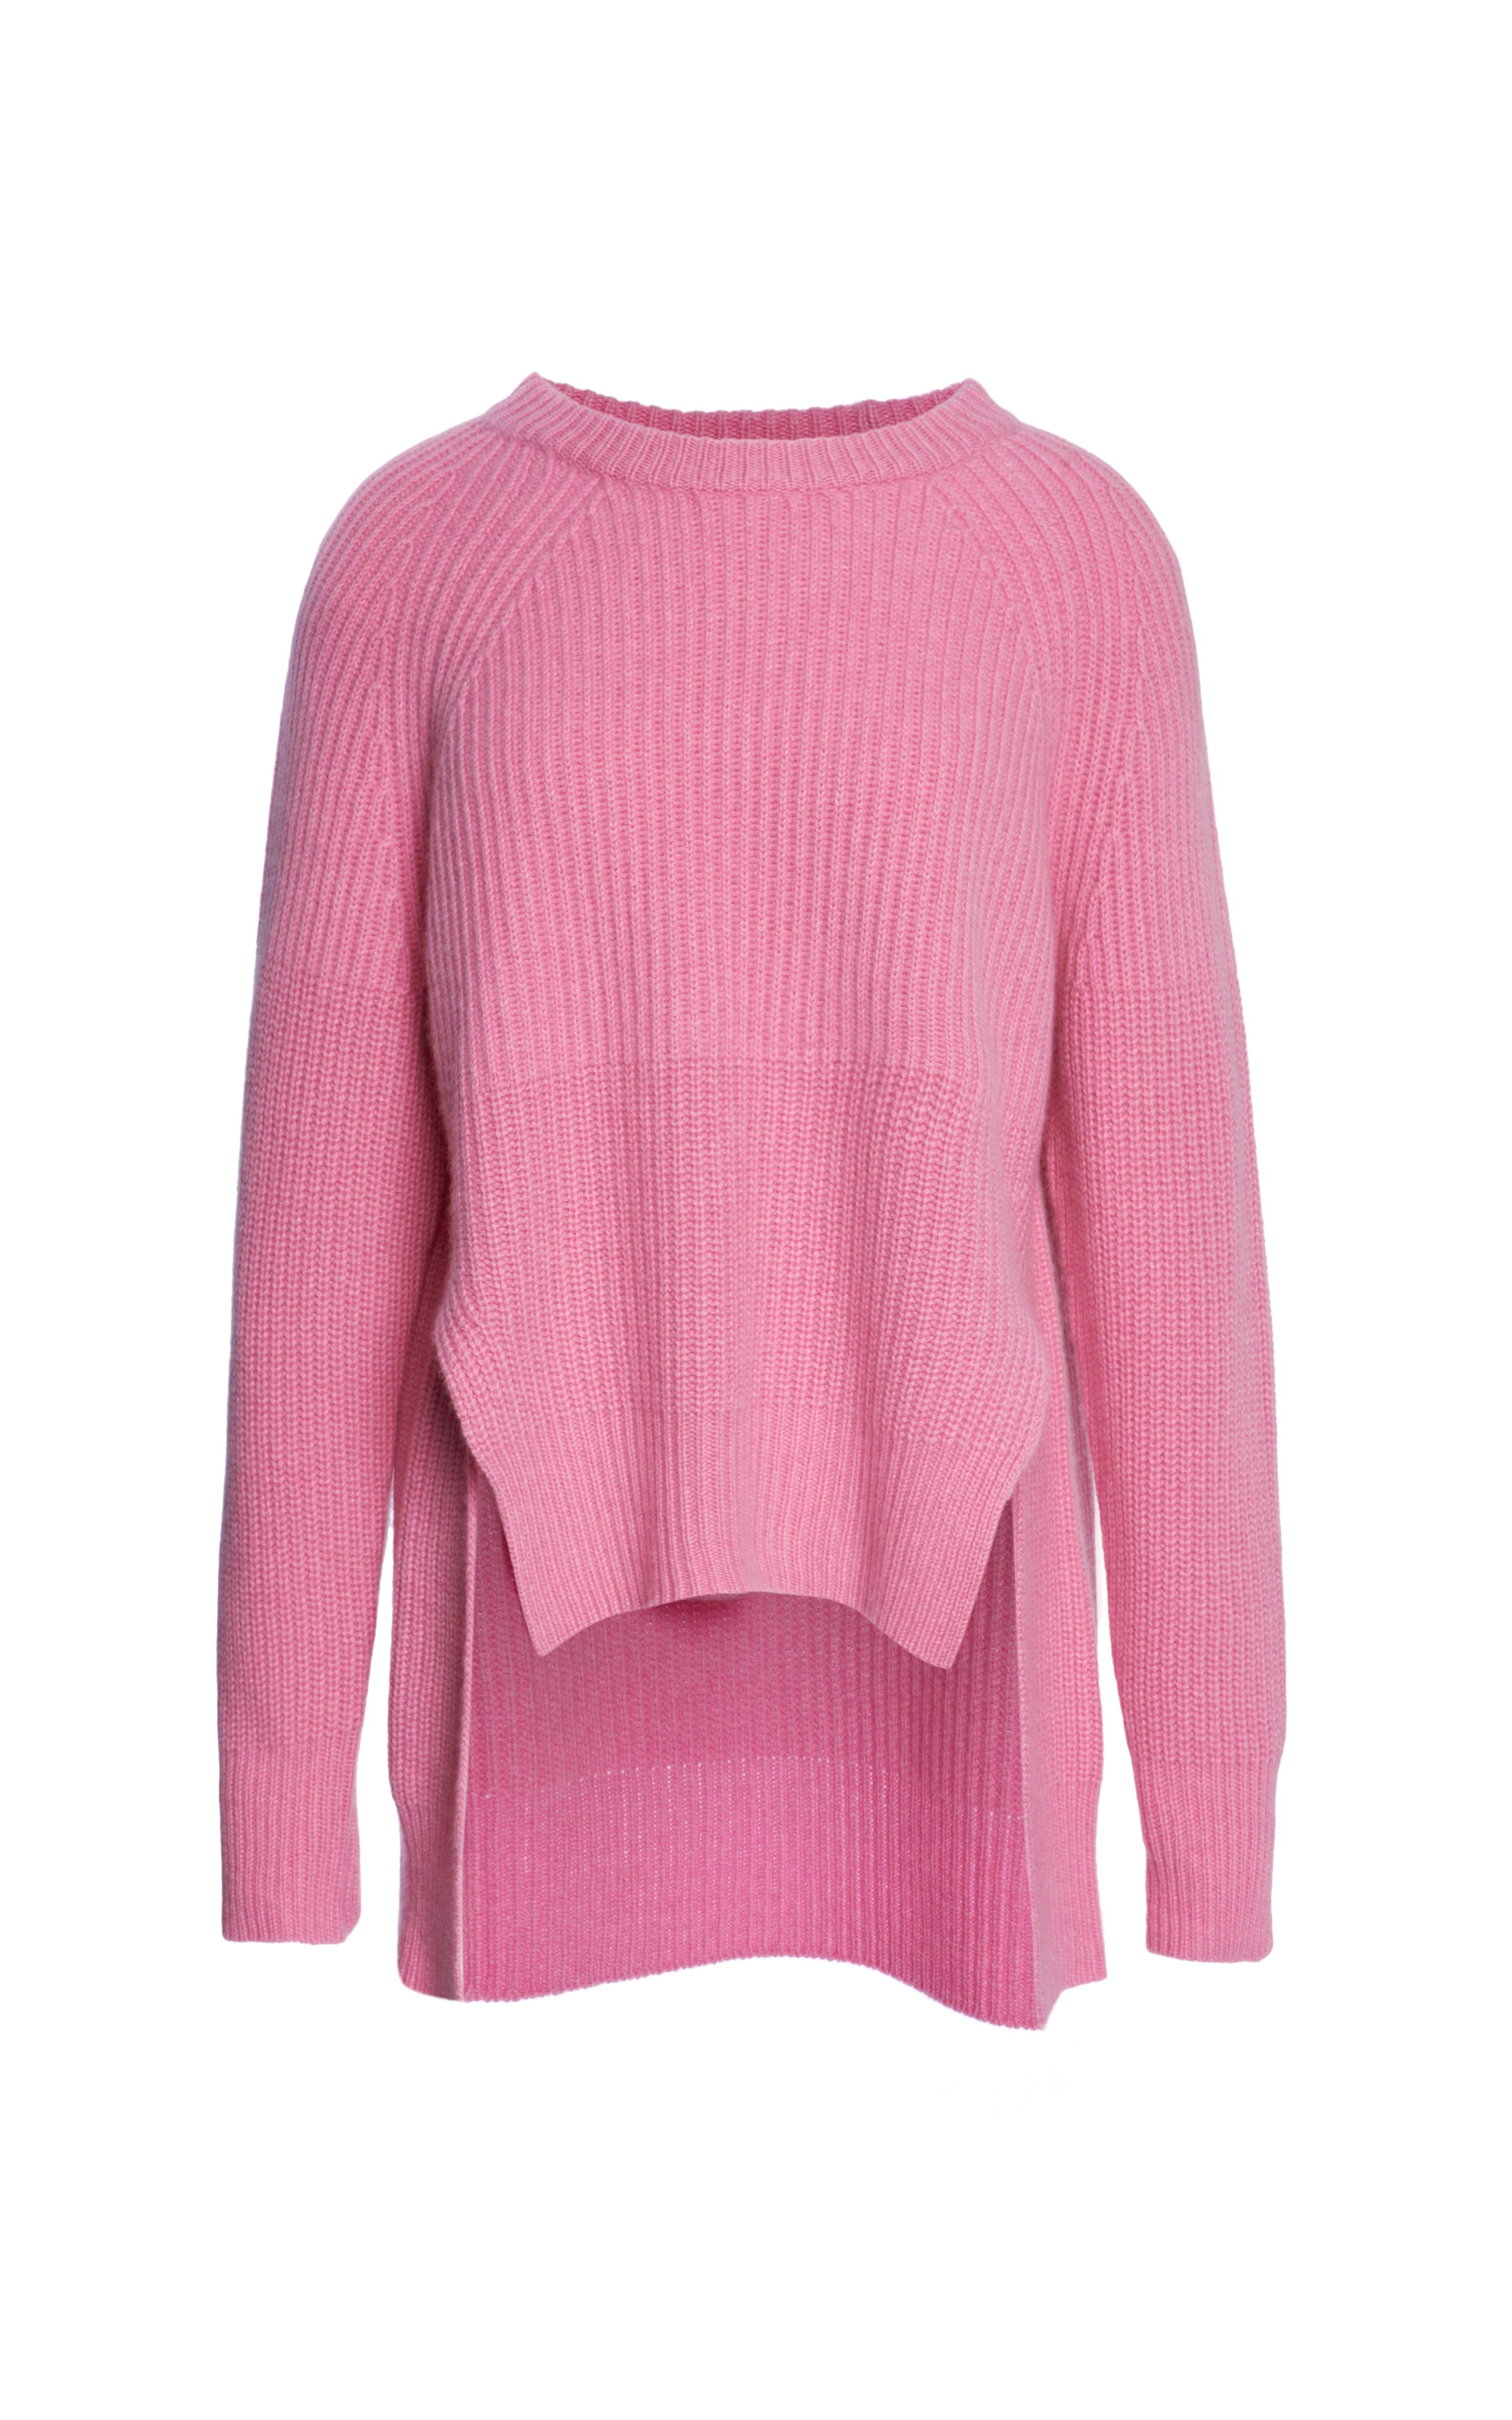 Whistles Drop Back Cashmere Sweater in Pink | Lyst